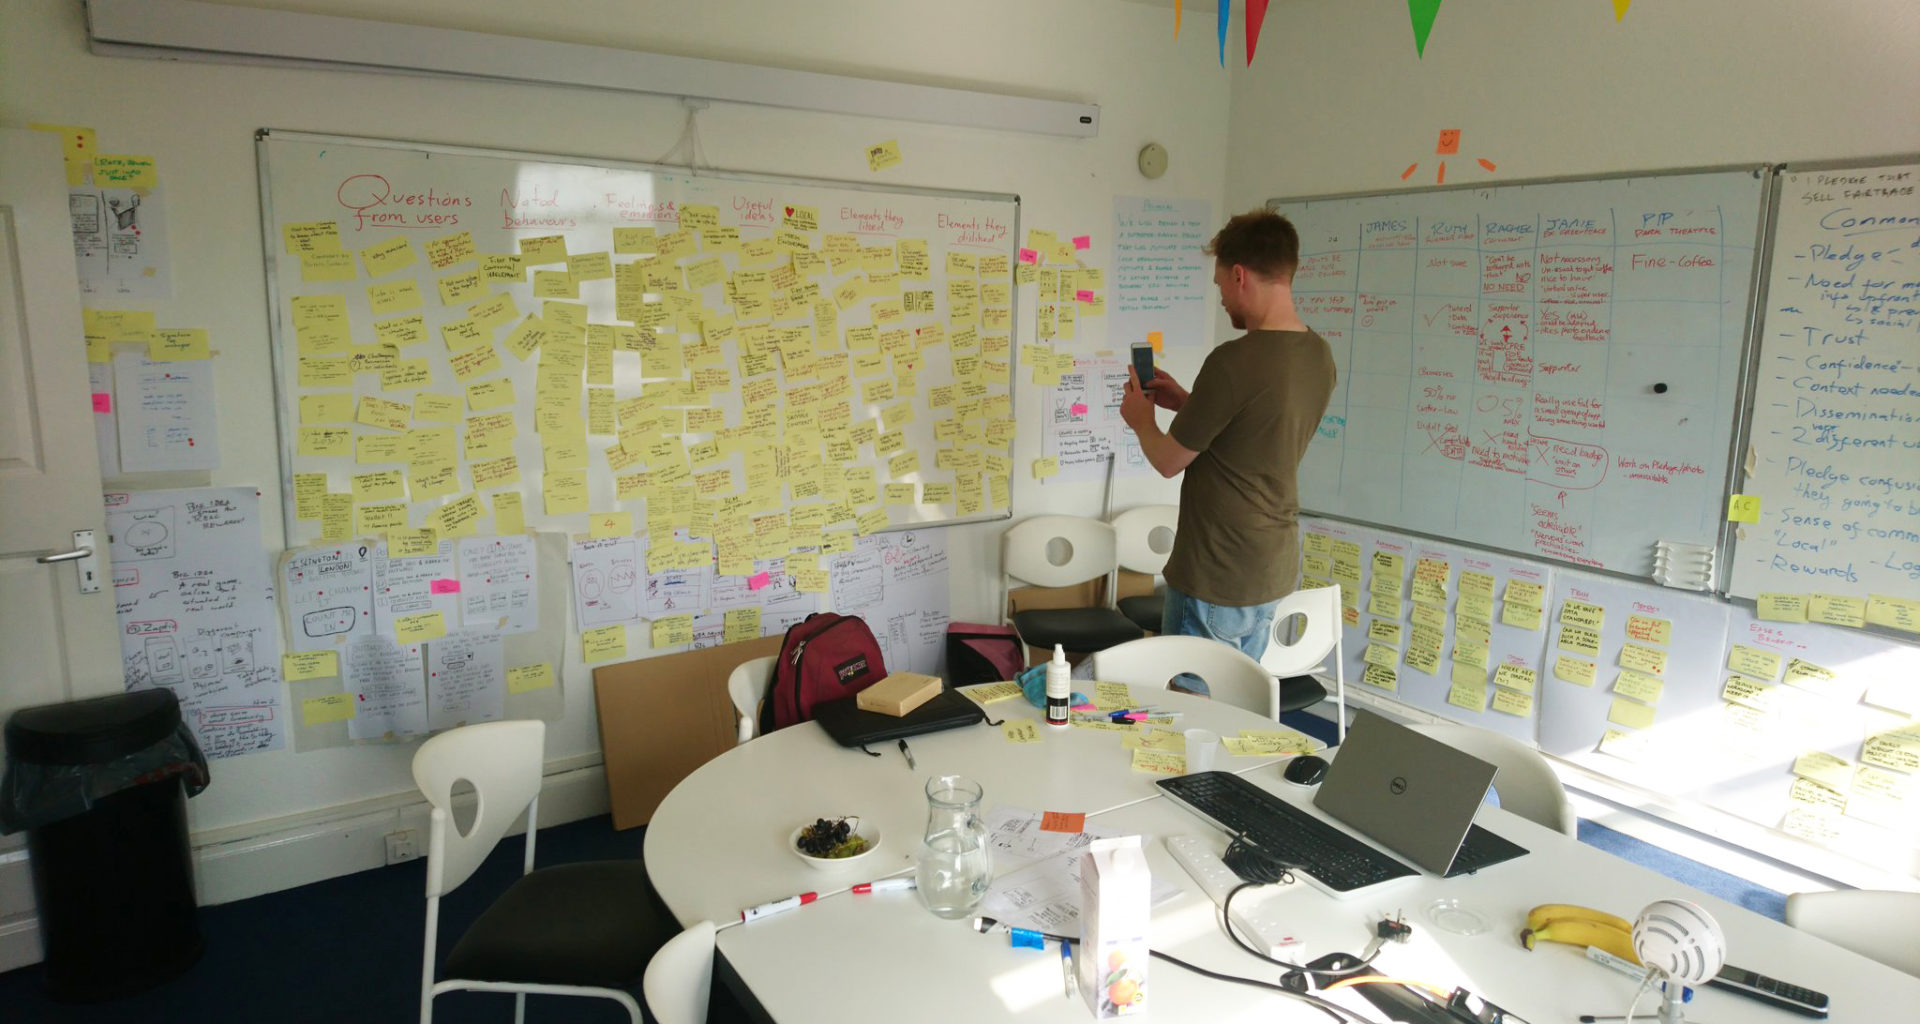 Taking photographs of a whiteboard covered with user testing post-it notes.